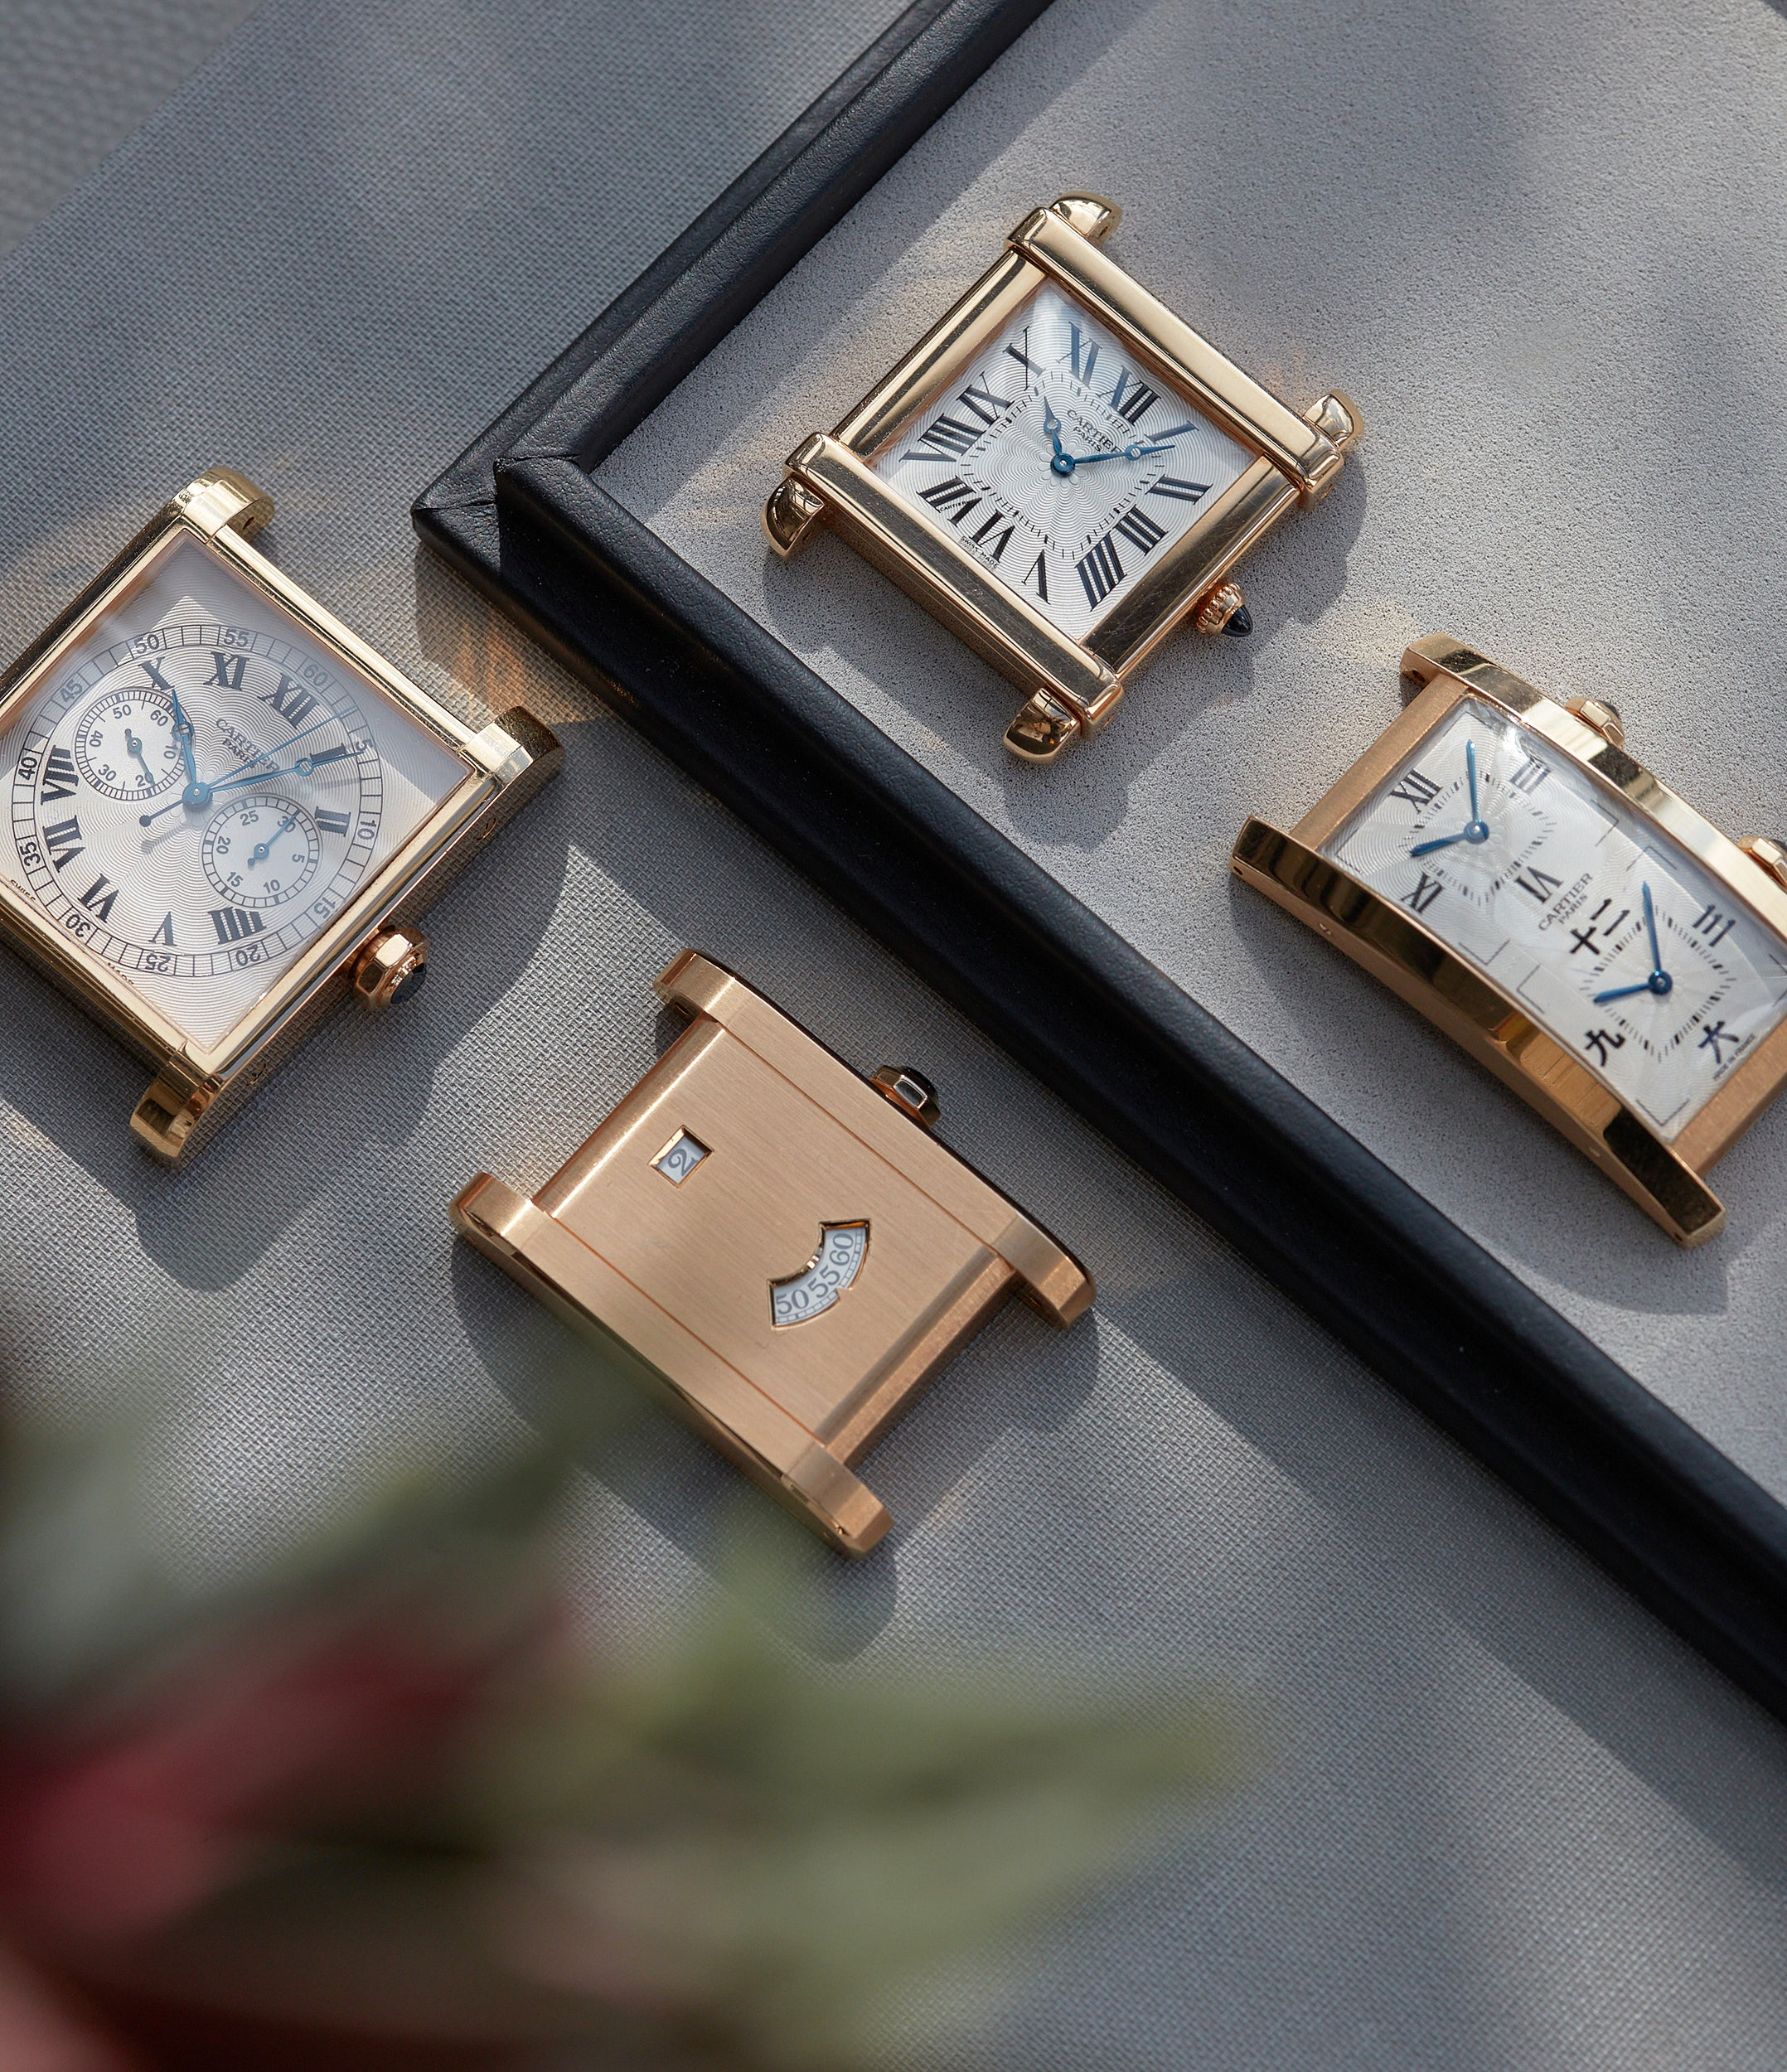 Cartier CPCP watches on a table